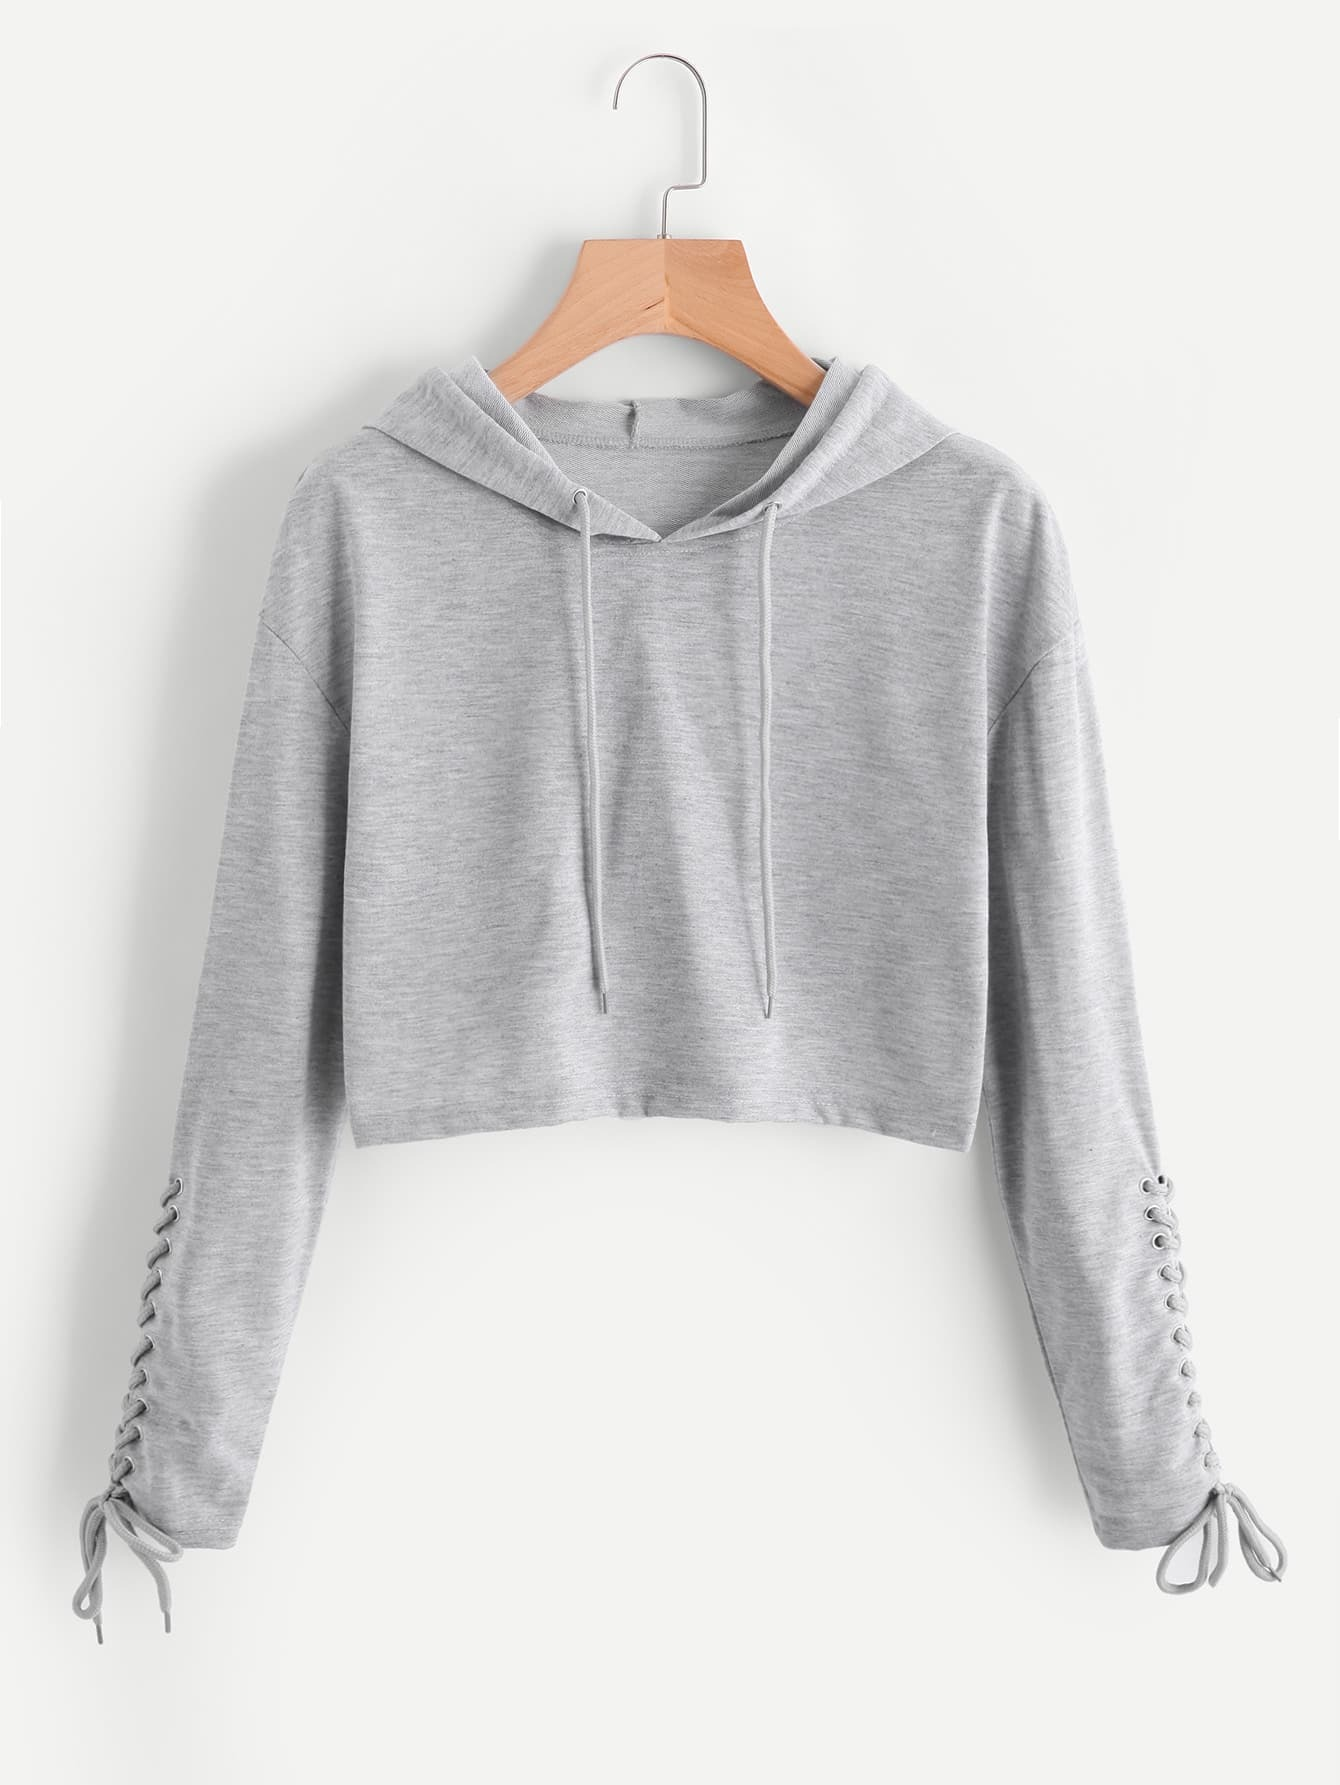 Grommet Lace Up Sleeve Crop Marled Hoodie raglan sleeve binding marled crop top